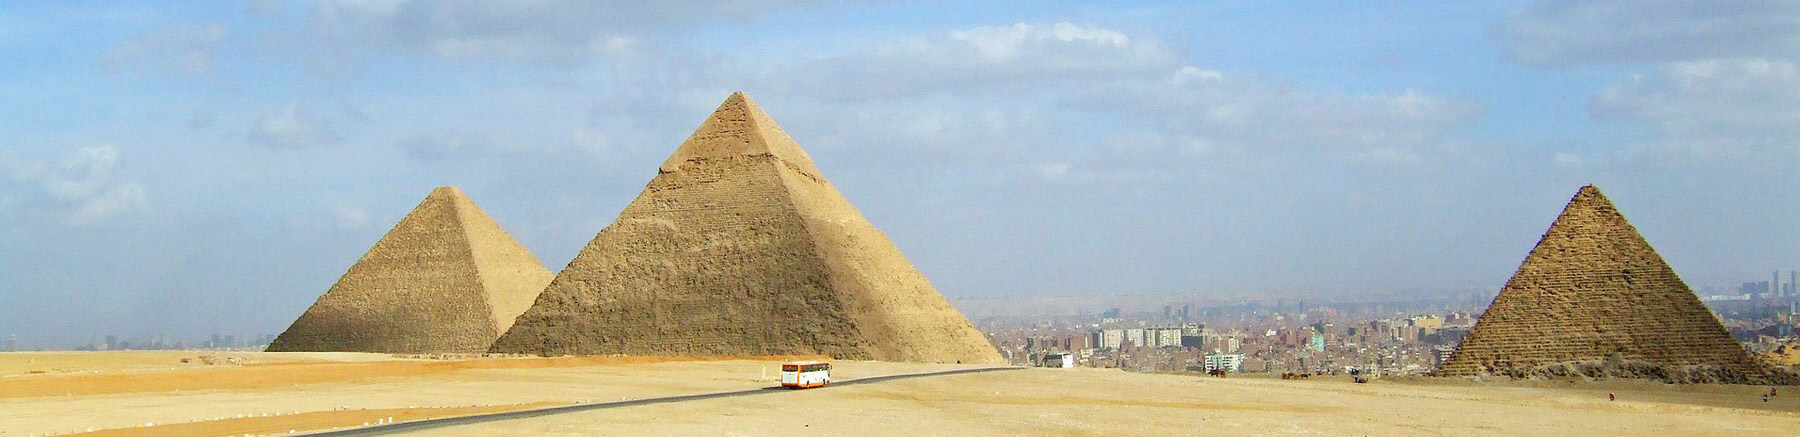 Giza pyramid complex with the 3 pyramids near the city of Cairo in Egypt